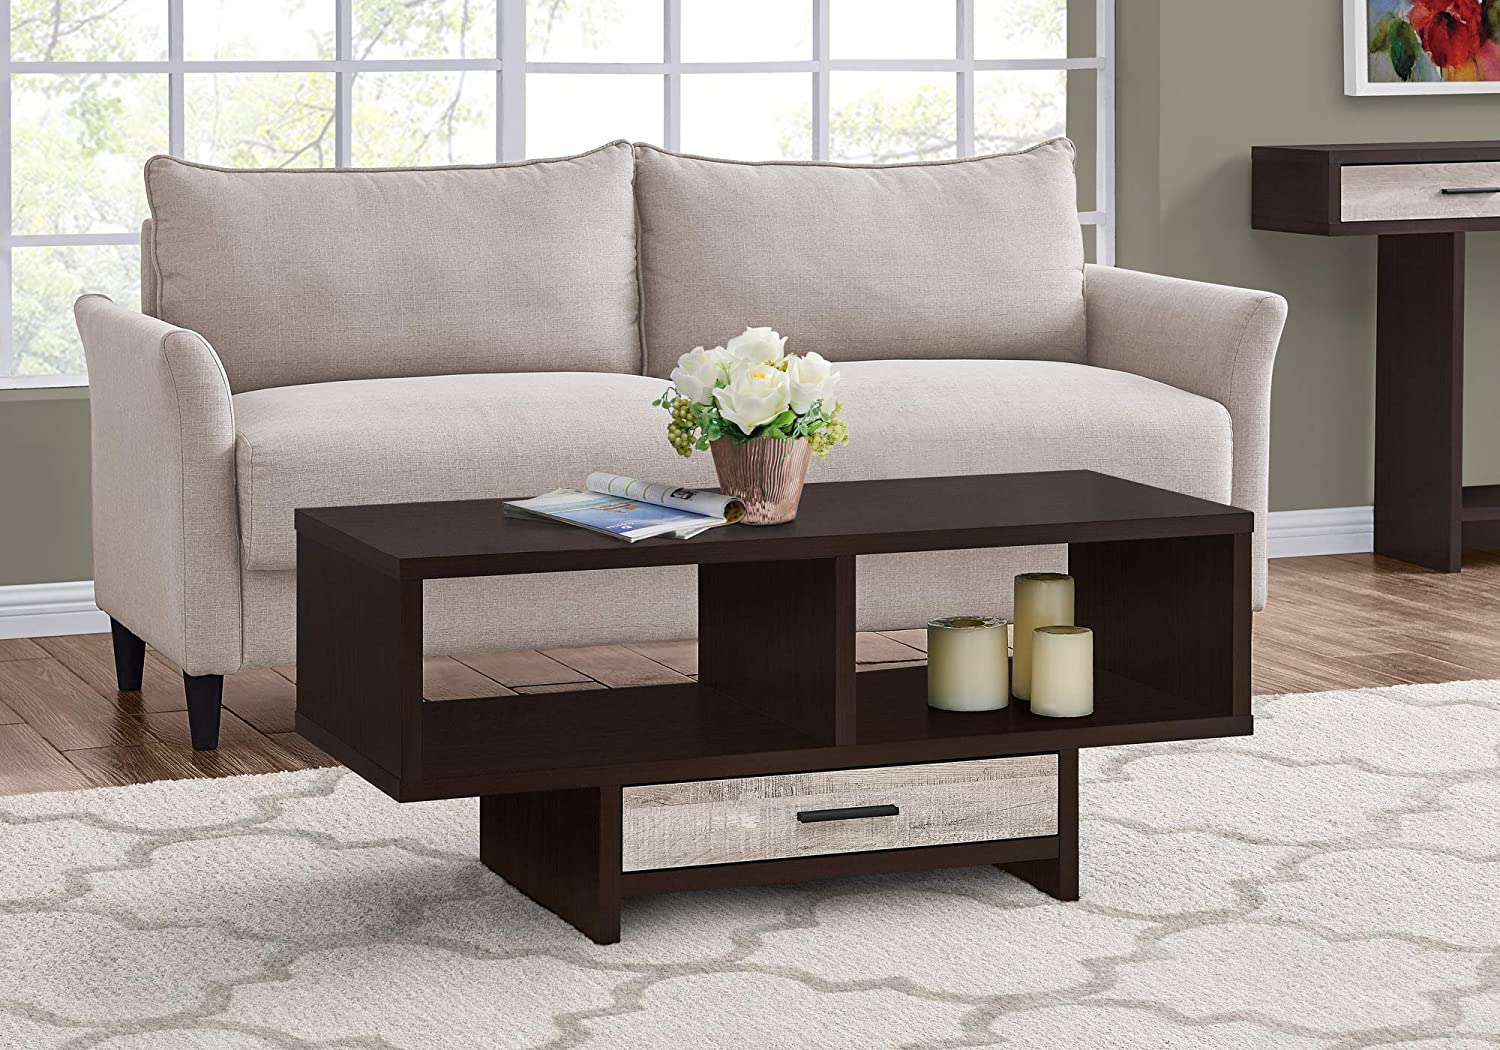 Monarch Specialties Drawer & Shelves Rectangular Cocktail Accent Coffee Table, 43